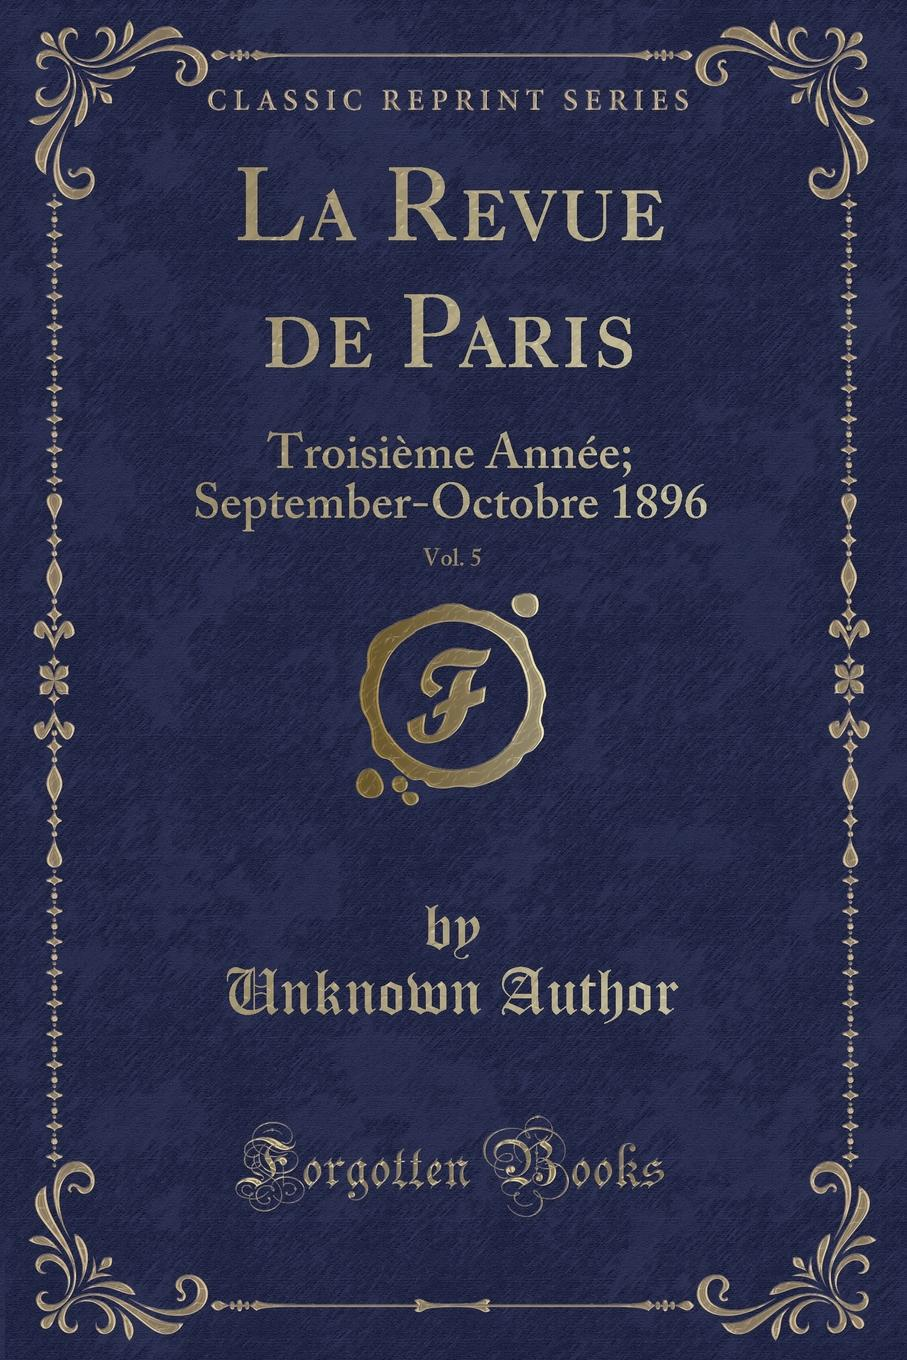 Unknown Author La Revue de Paris, Vol. 5. Troisieme Annee; September-Octobre 1896 (Classic Reprint) paul laurent revue historique ardennaise vol 3 annee 1896 classic reprint